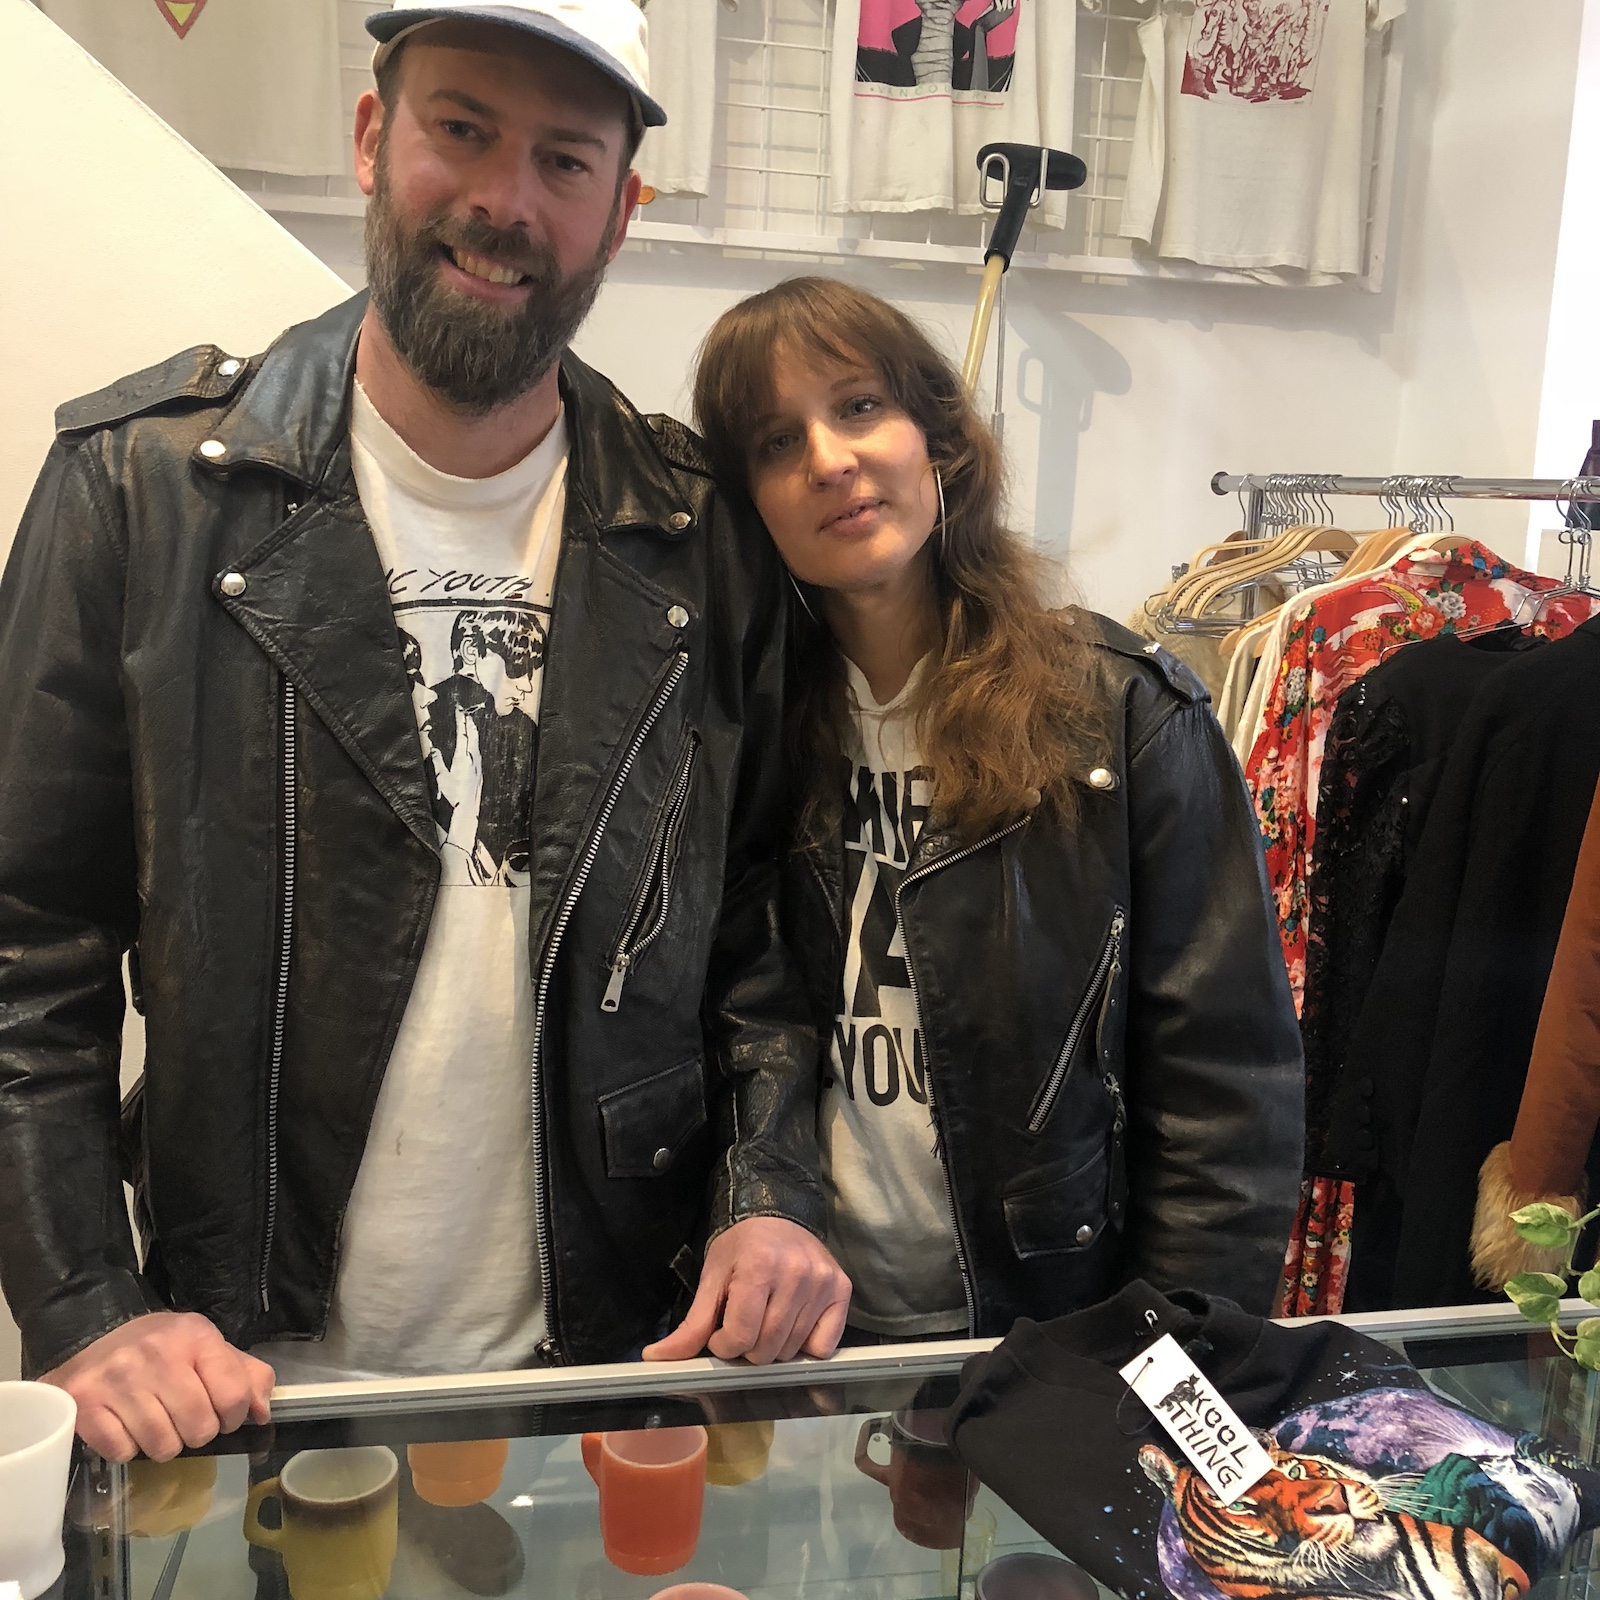 5a5adfc05ec5 Eastside Flea mainstays and vintage vets, Mysa and Forrest, are the couple  behind Kool Thing Vintage. We linked up the duo as they were in the final  stages ...